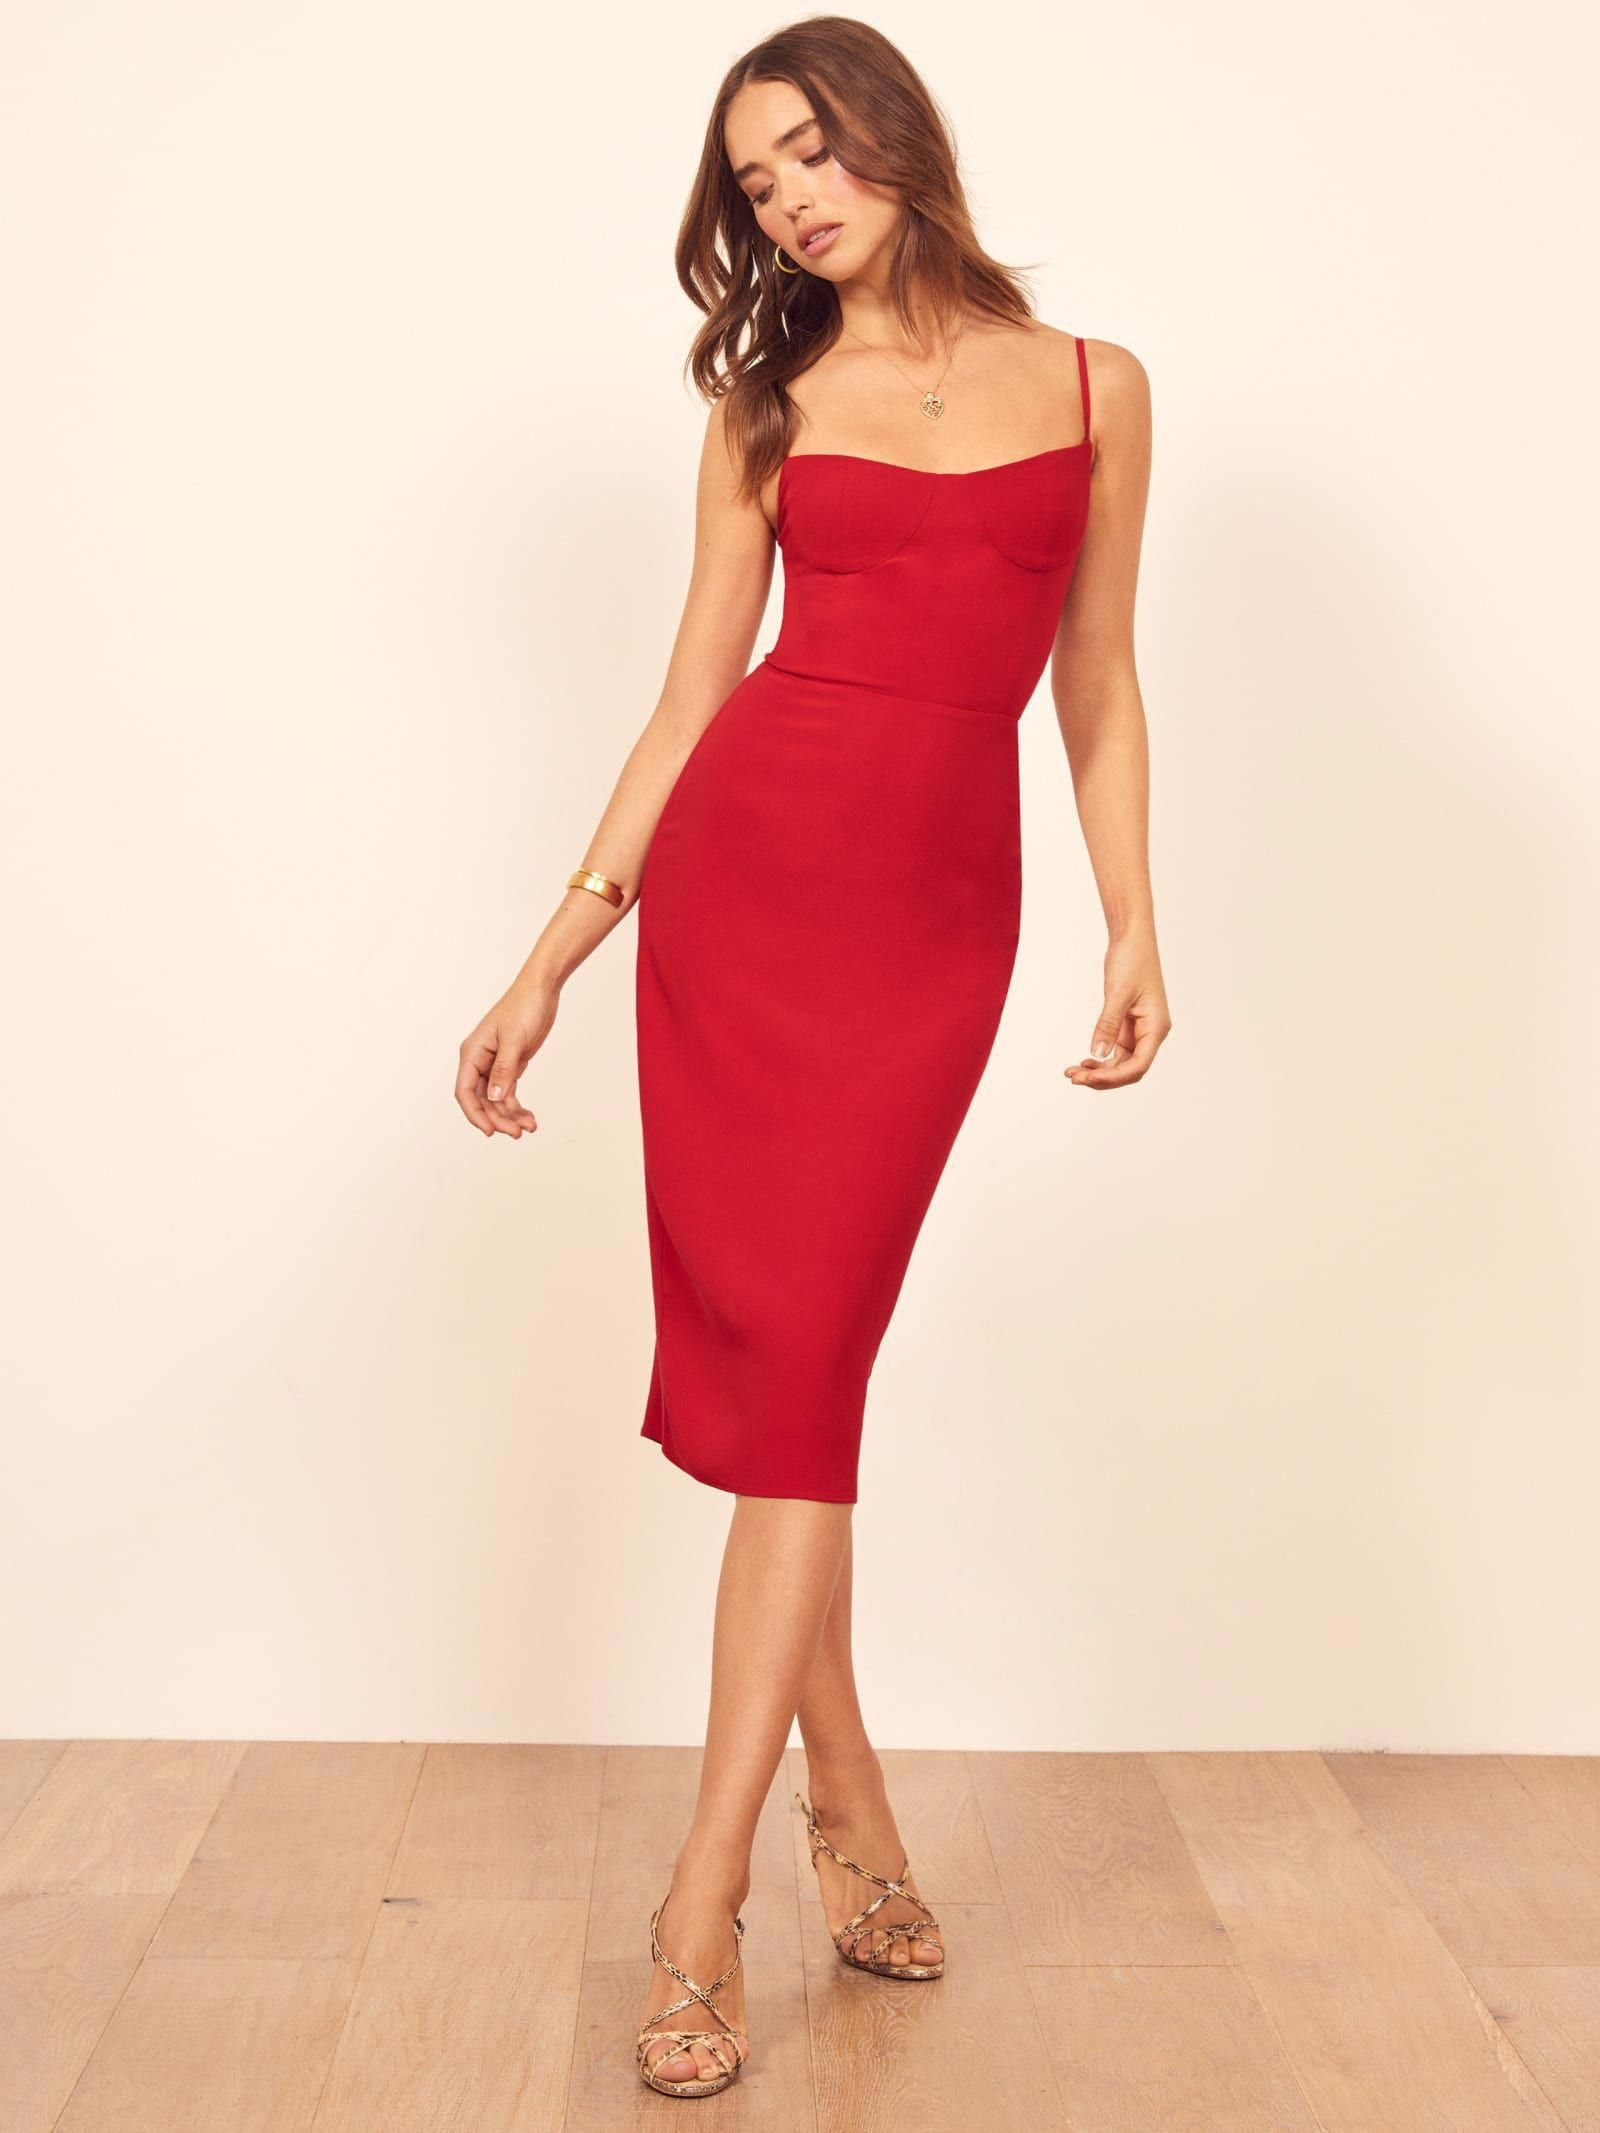 Isabel Dress #redcocktaildress in 13  Red dresses classy